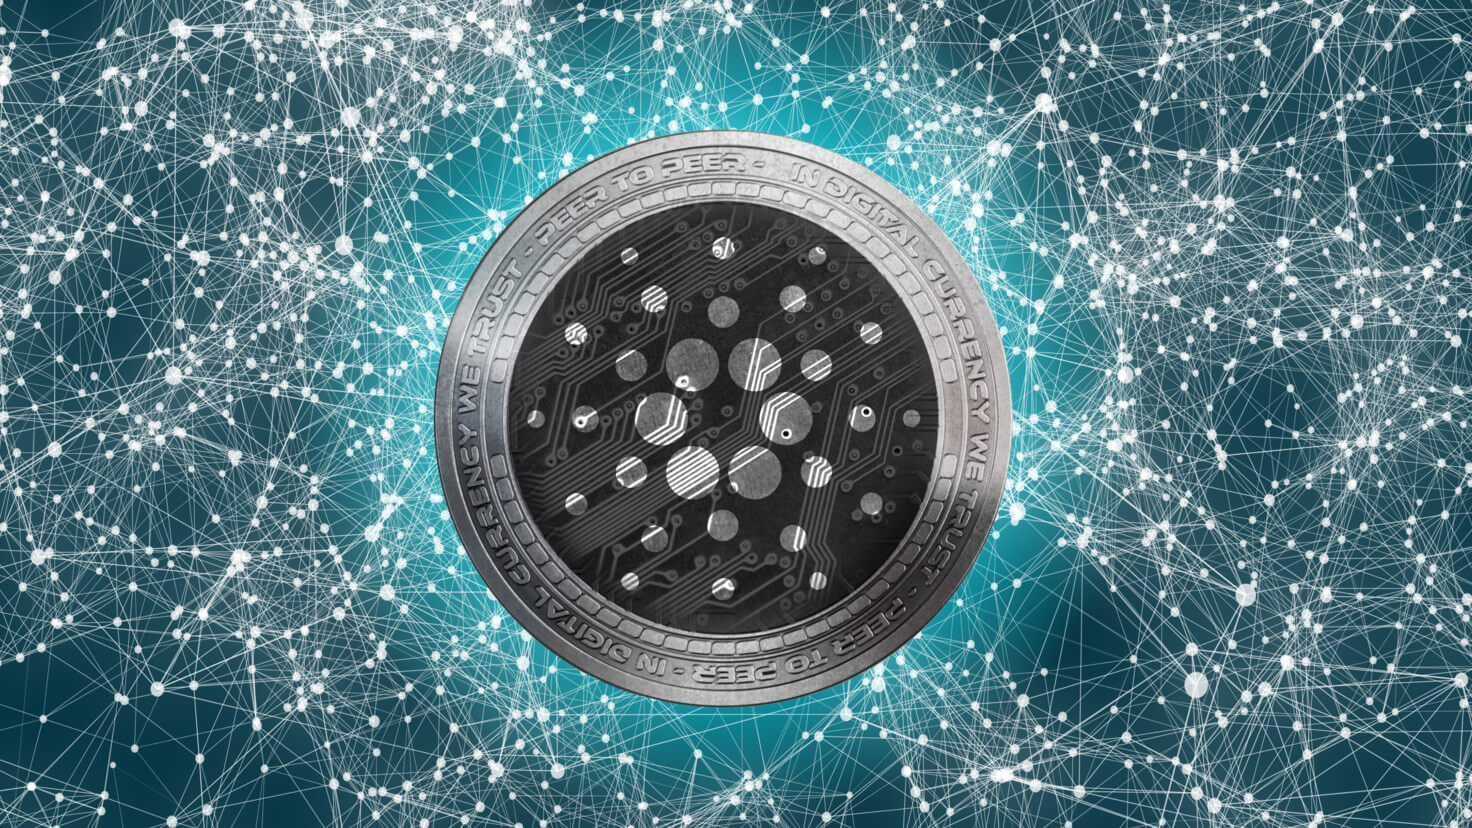 Cardano ADA Cryptocurrency Coin